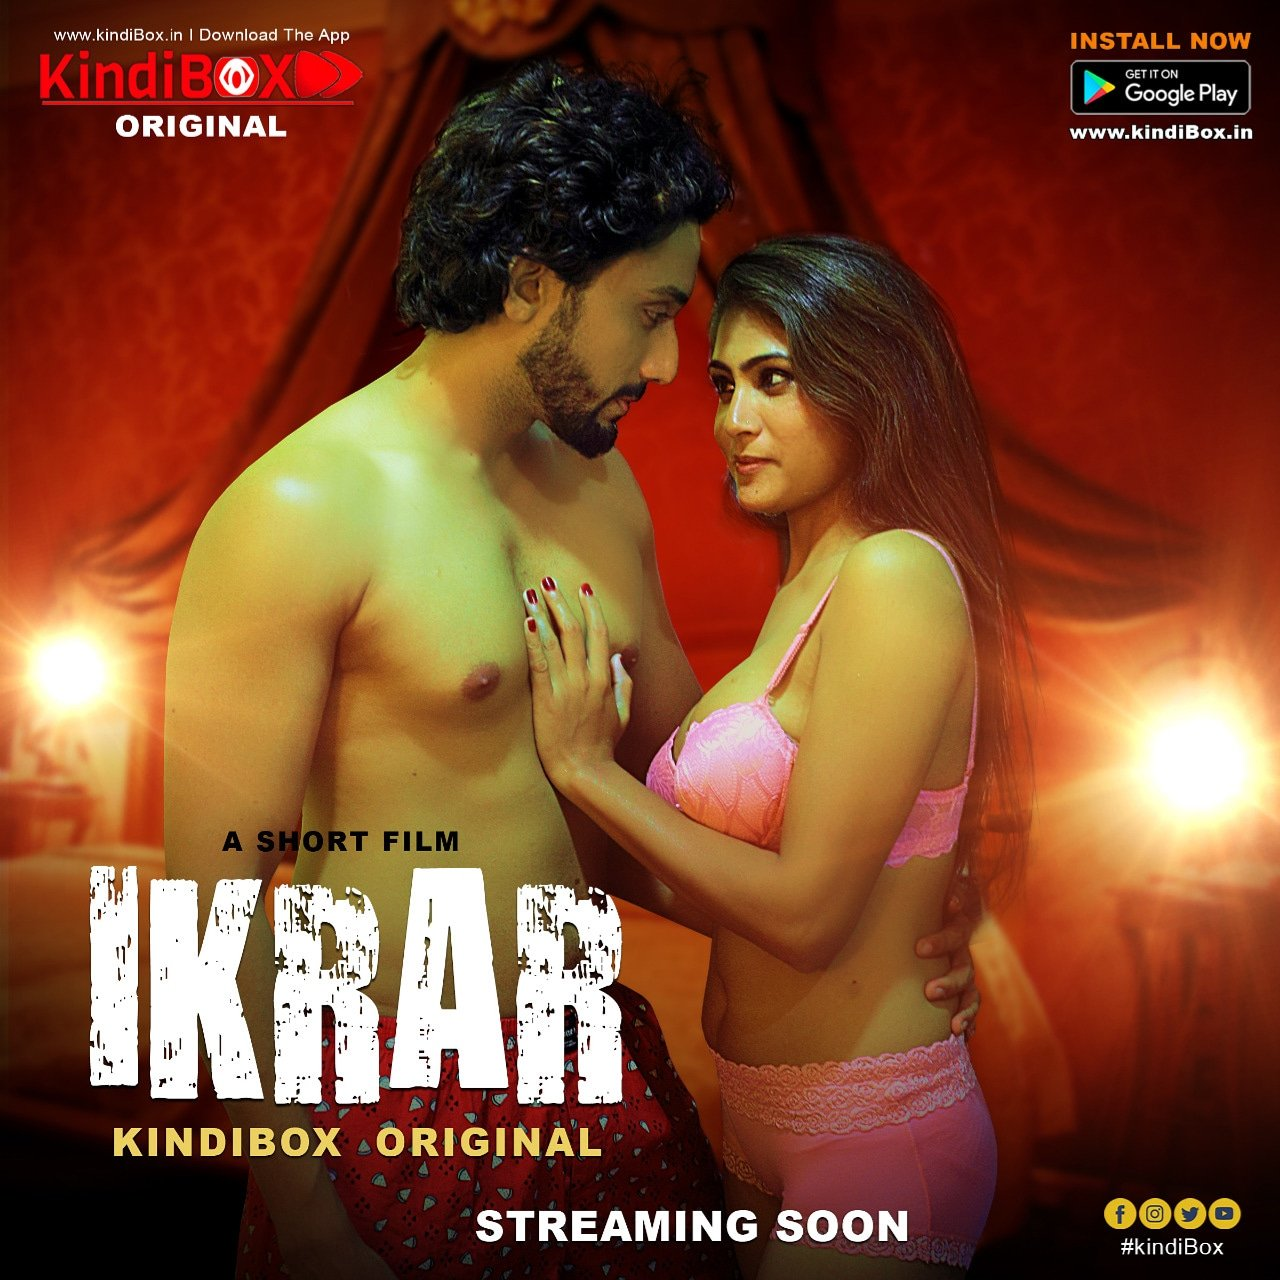 Ikrar 2020 KindiBOX Original Hindi Short Film 720p HDRip 160MB Download